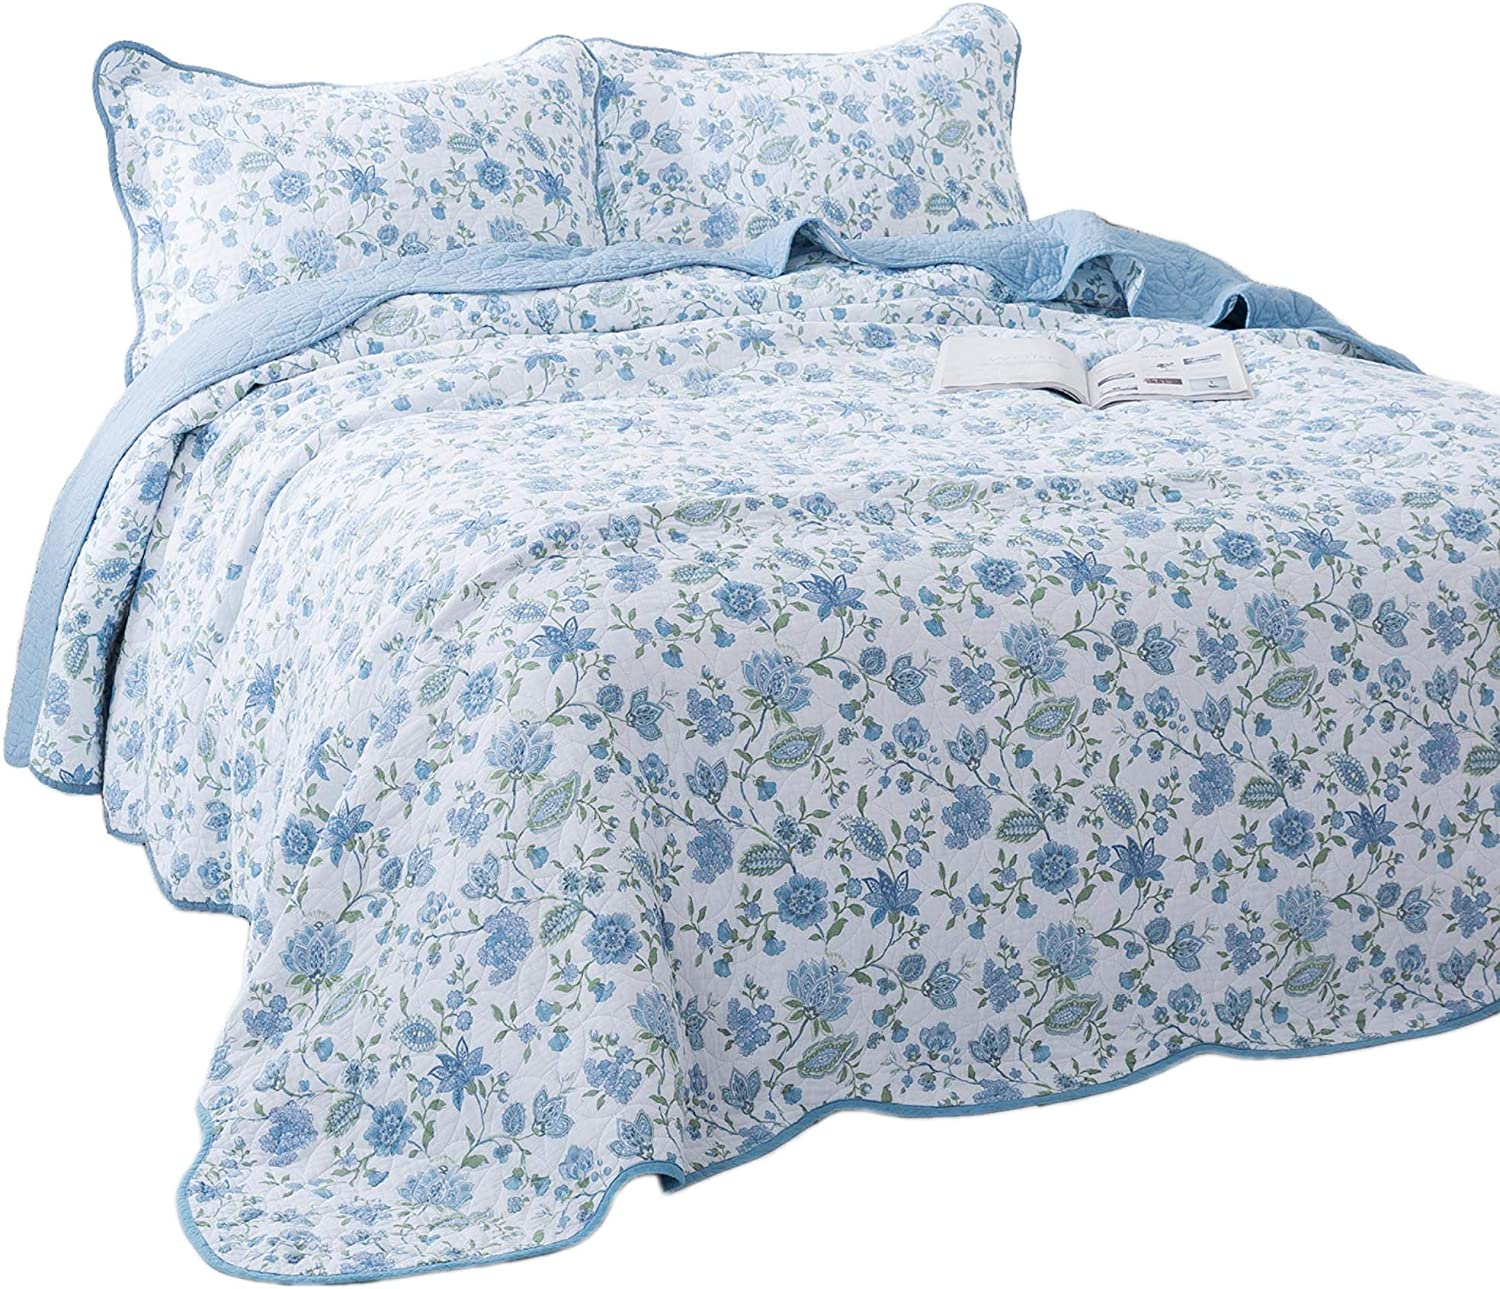 KASENTEX 3 Piece Quilt Set - Contemporary Oversized Bedding with Country-Chic Floral Printed Design, 100% Cotton Soft & Warm Reversible Bedspread (Blue, Queen + 2 Shams 102x106+20x26 x2)